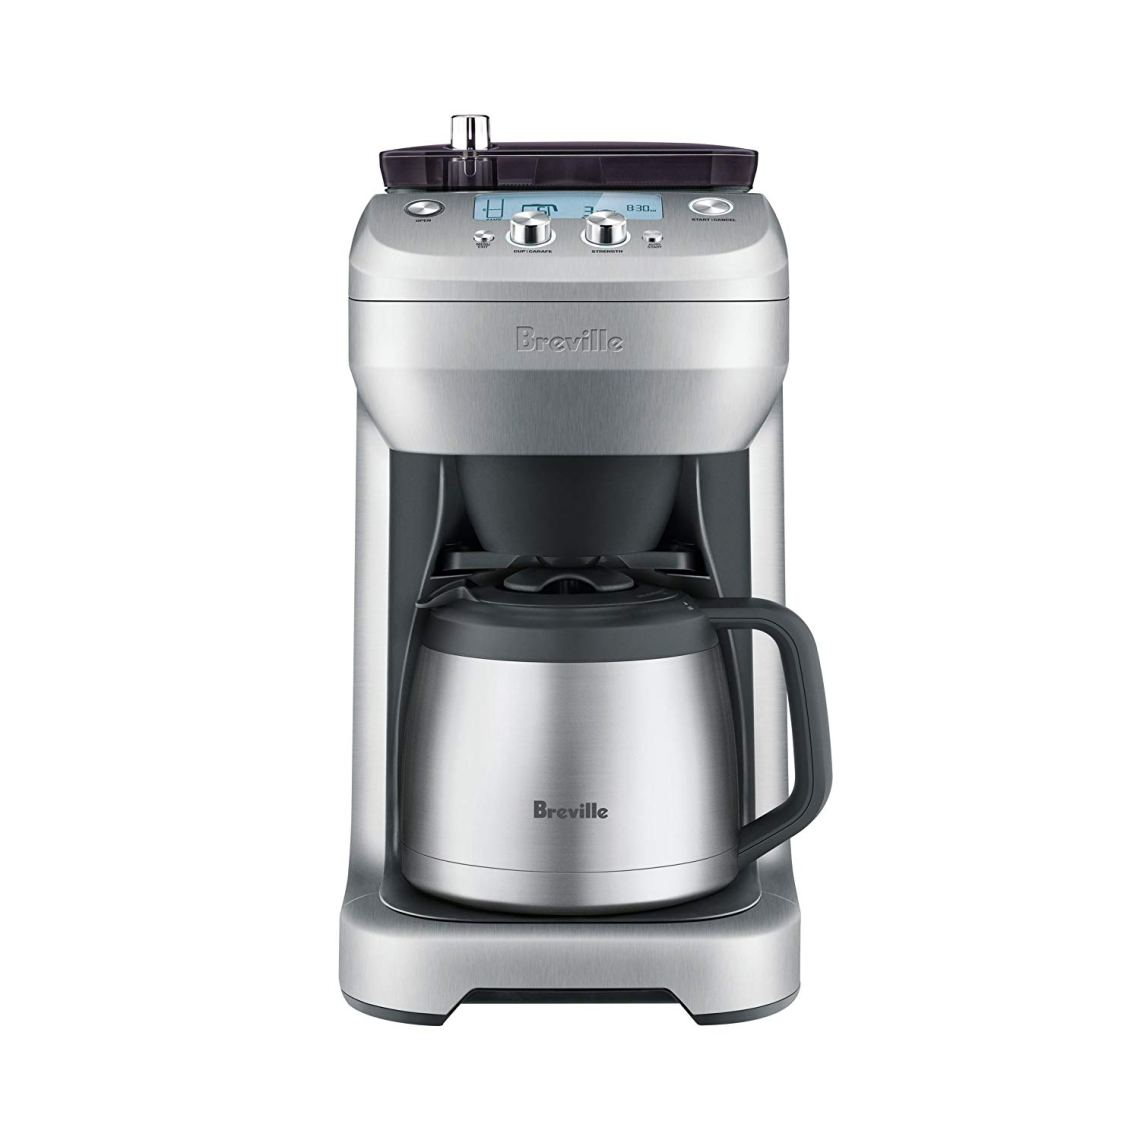 Coffee-Maker-With-Grinder-Breville-Grind-Control